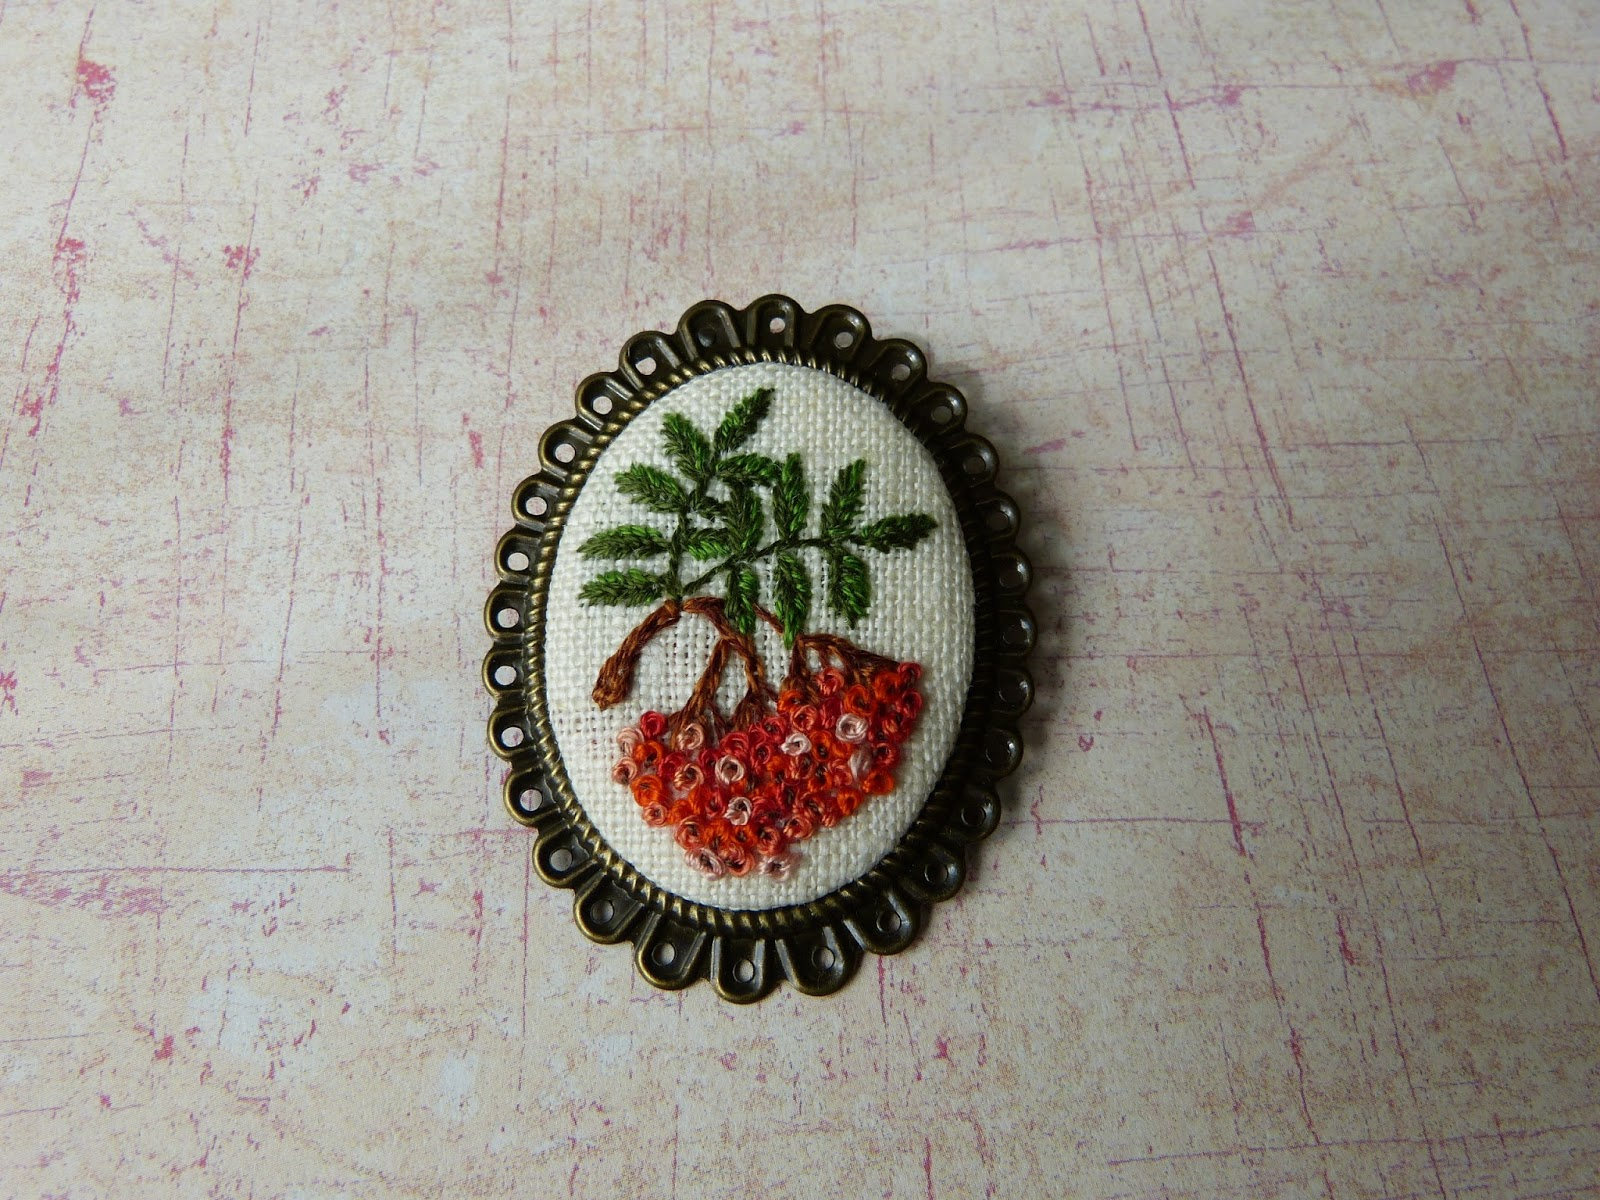 haftowana biżuteria, handmade jewerly, ebbroidered jewerly, broszka z haftem, embroidered pendant, embroidered brooch